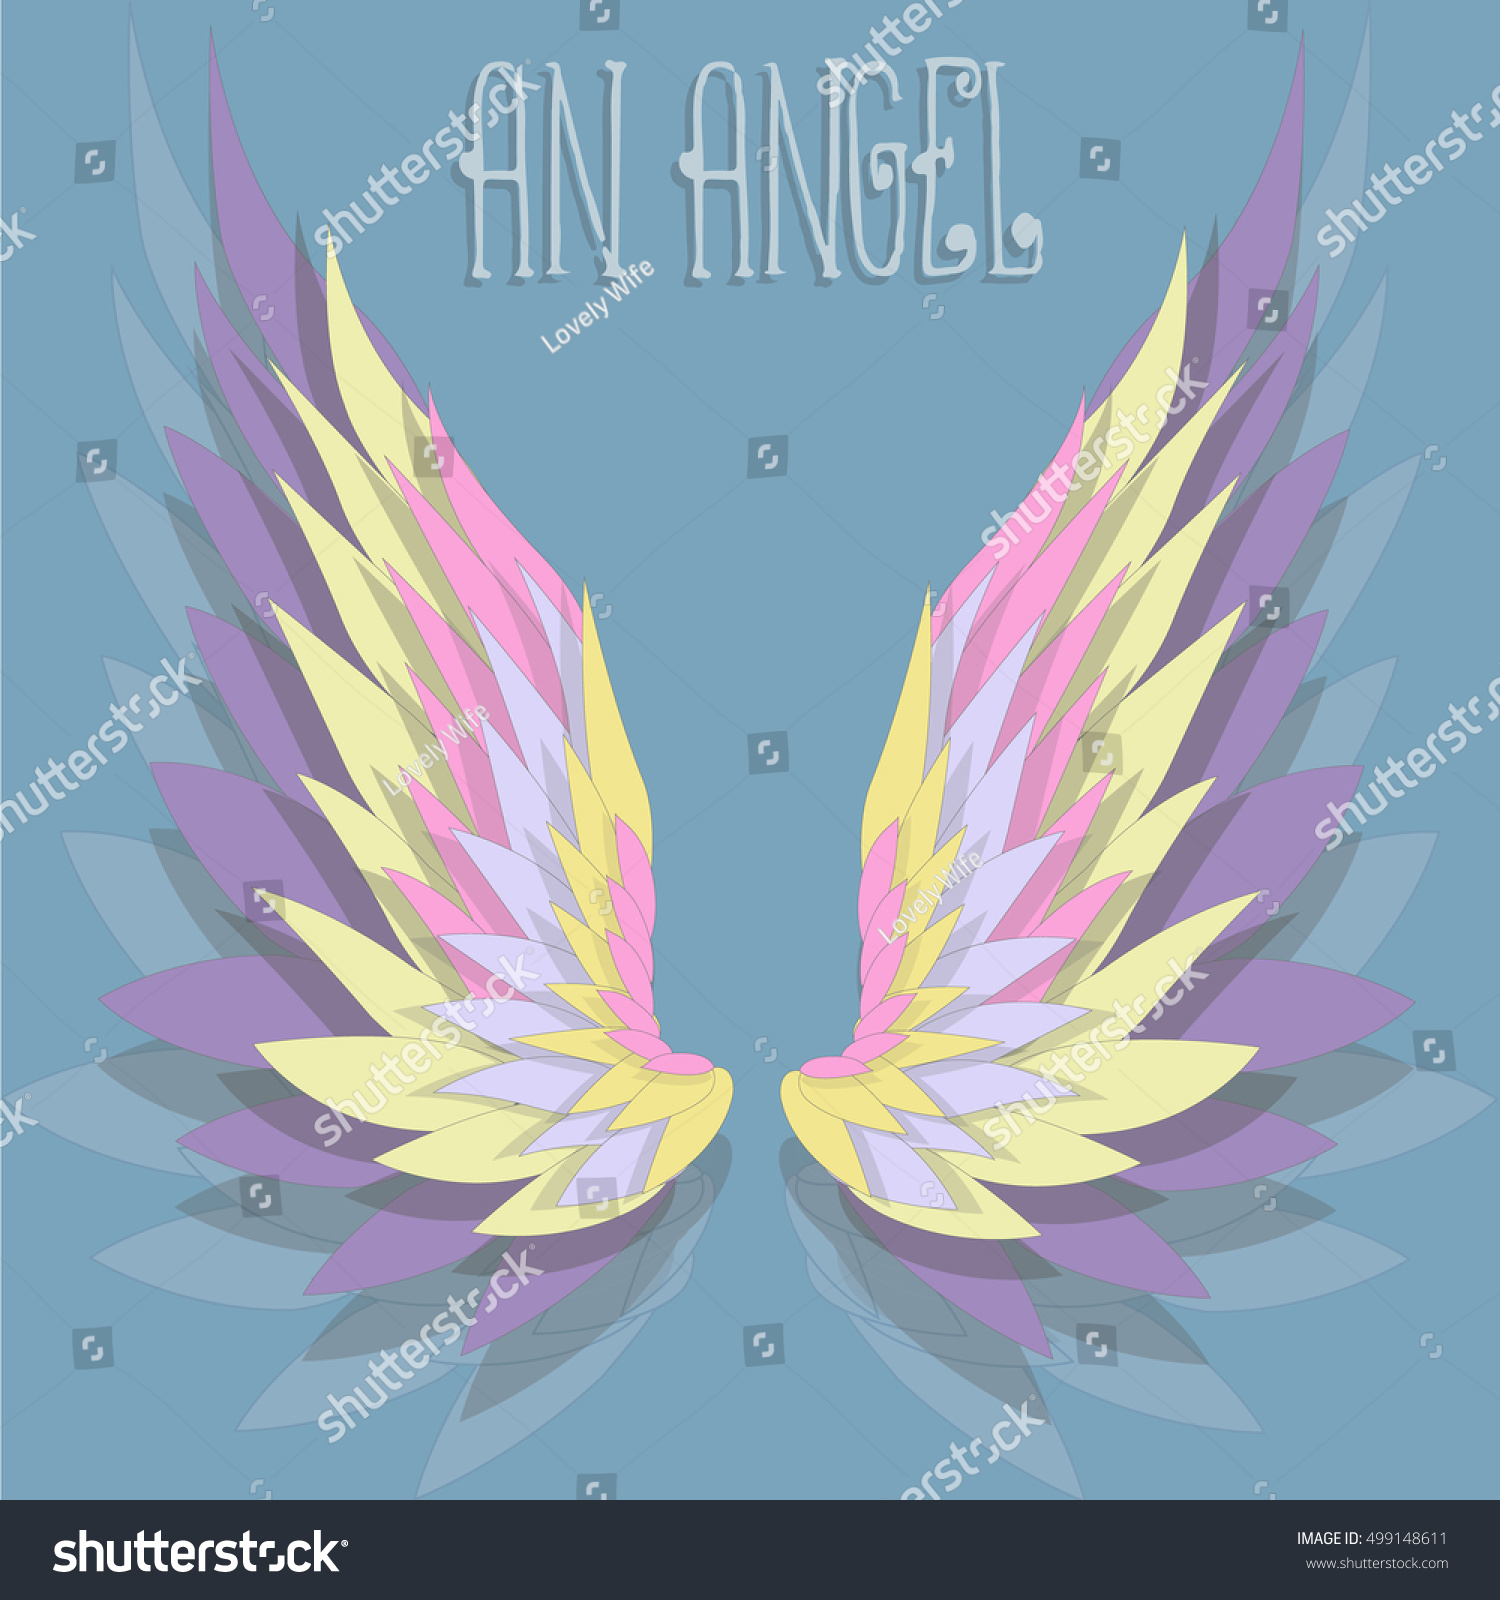 Background Color Angel Wings Vector Illustration Stock Vector ...